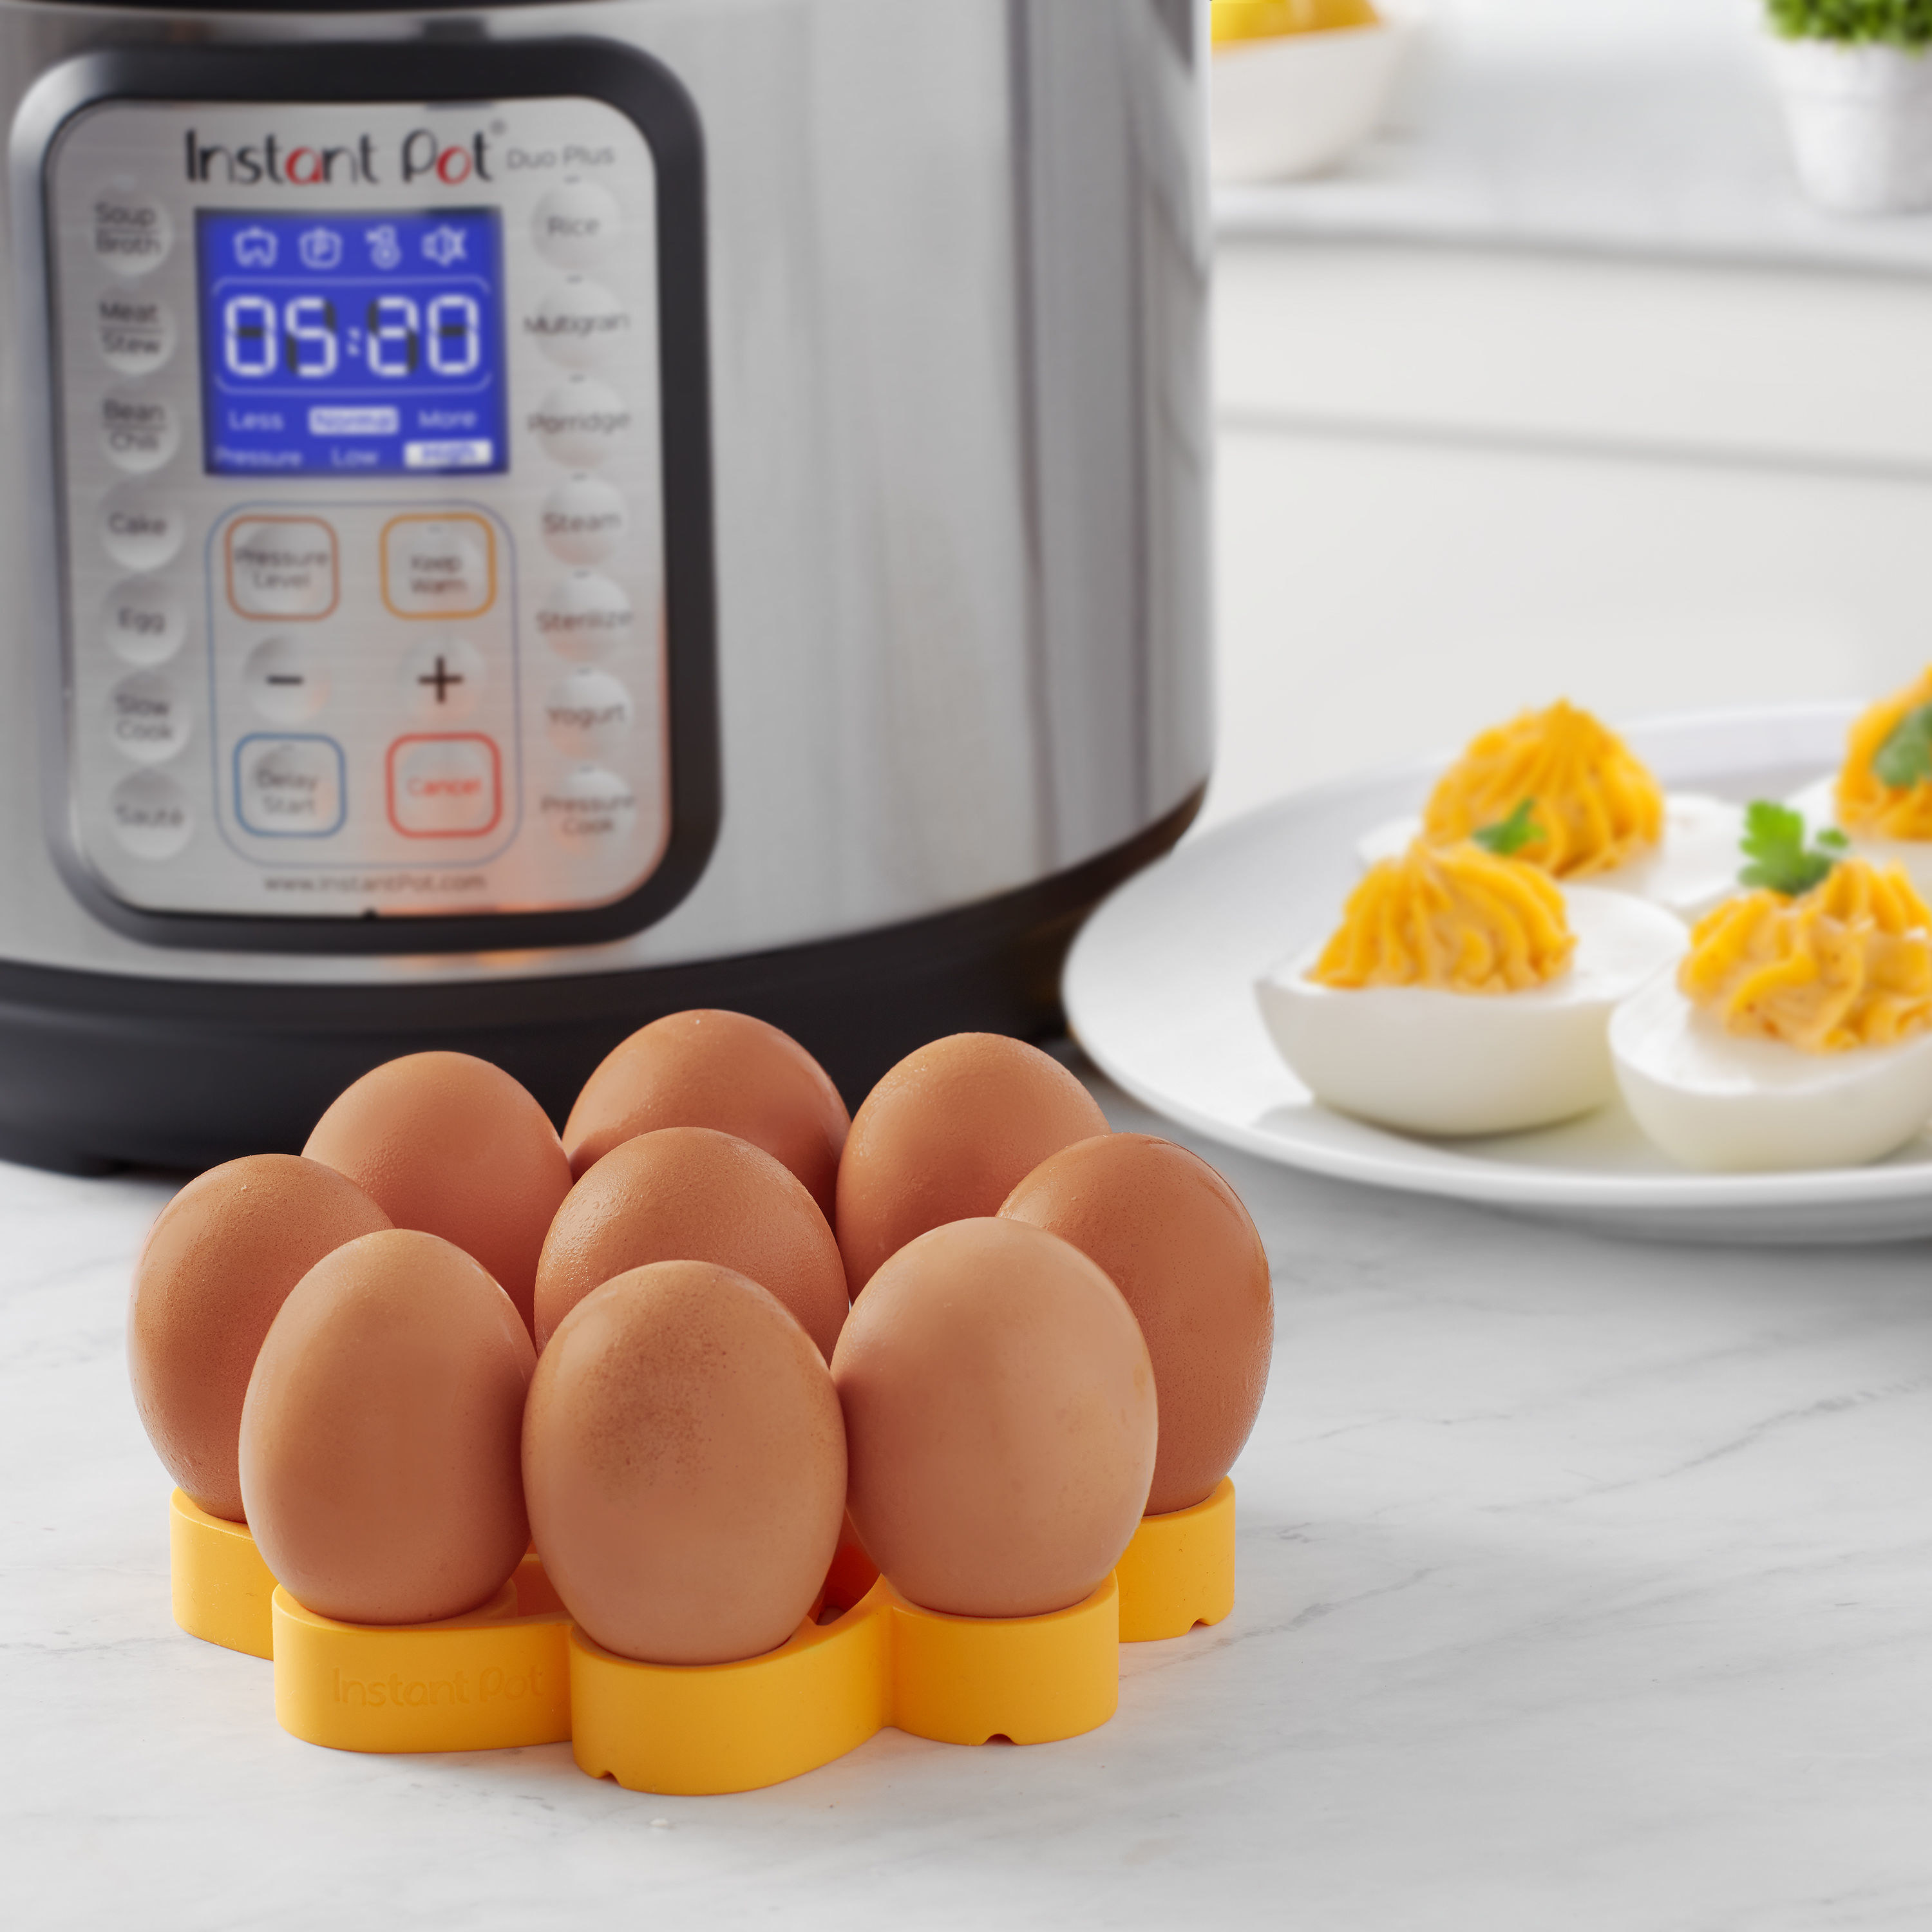 The rack, full of eggs in front of an Instant Pot and a plate of deviled eggs